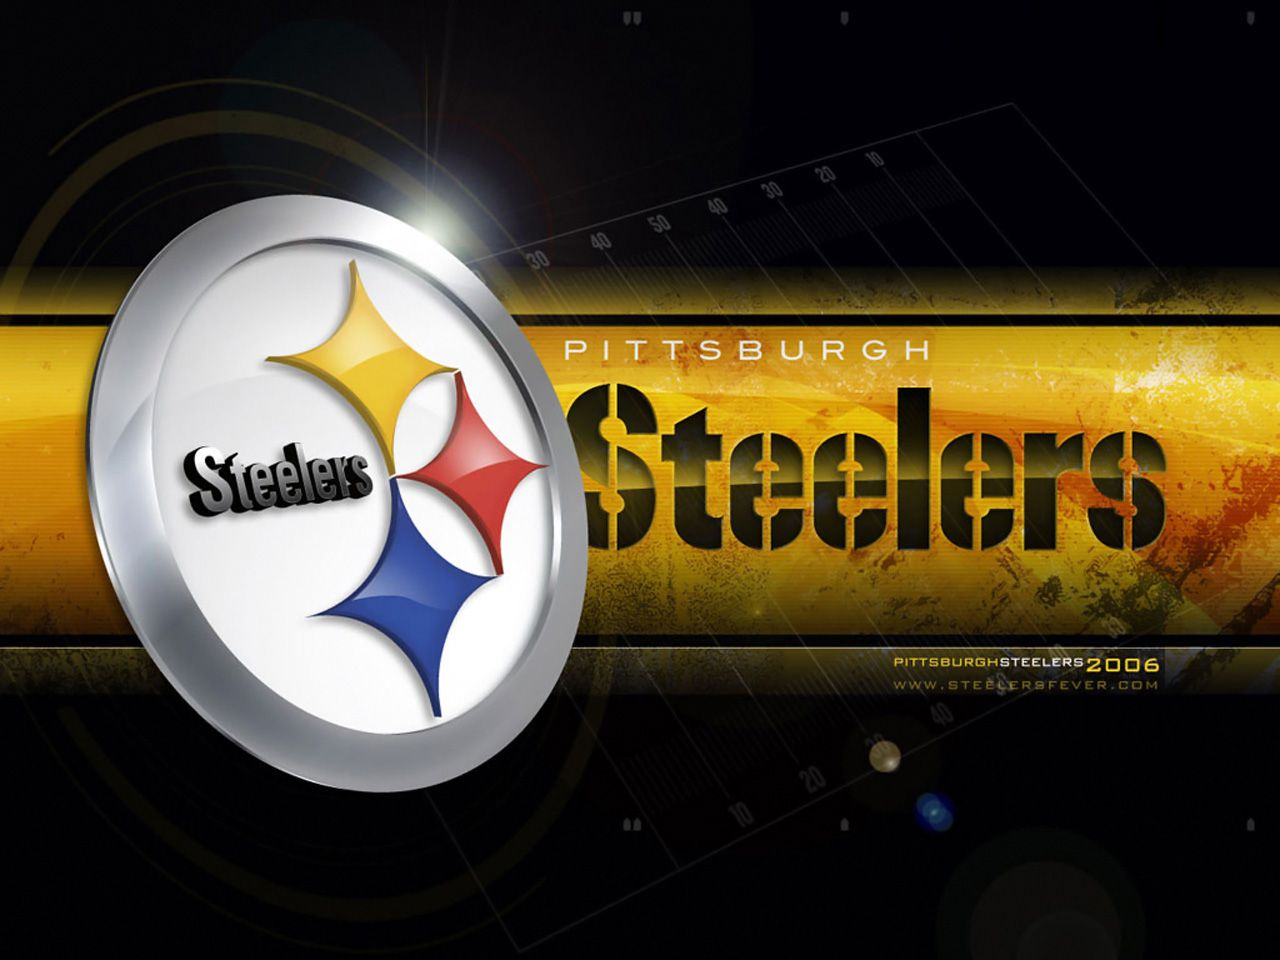 pittsburgh steelers wallpaper Images and Graphics STEELERS